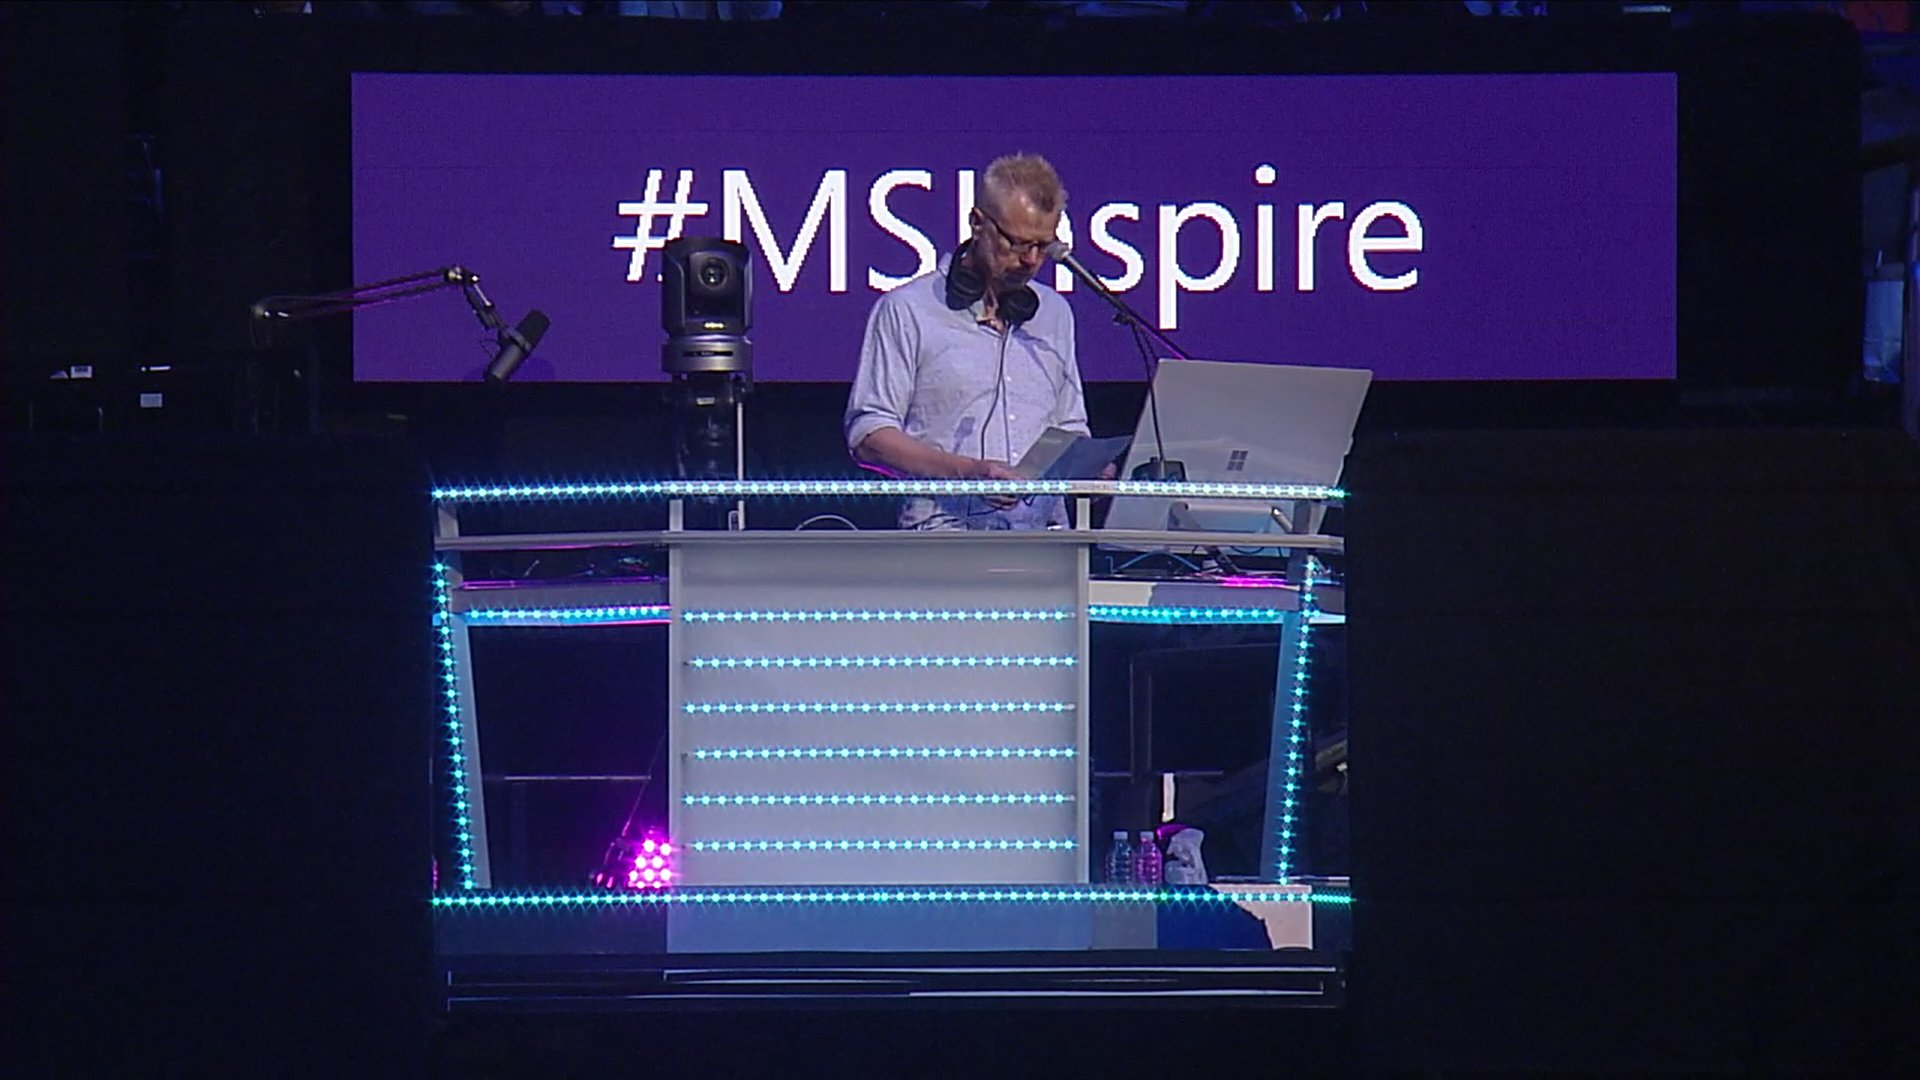 And looks like we are off.. #MSInspire begins with @Surface Studio DJ :) https://t.co/eIOMXOUoQF